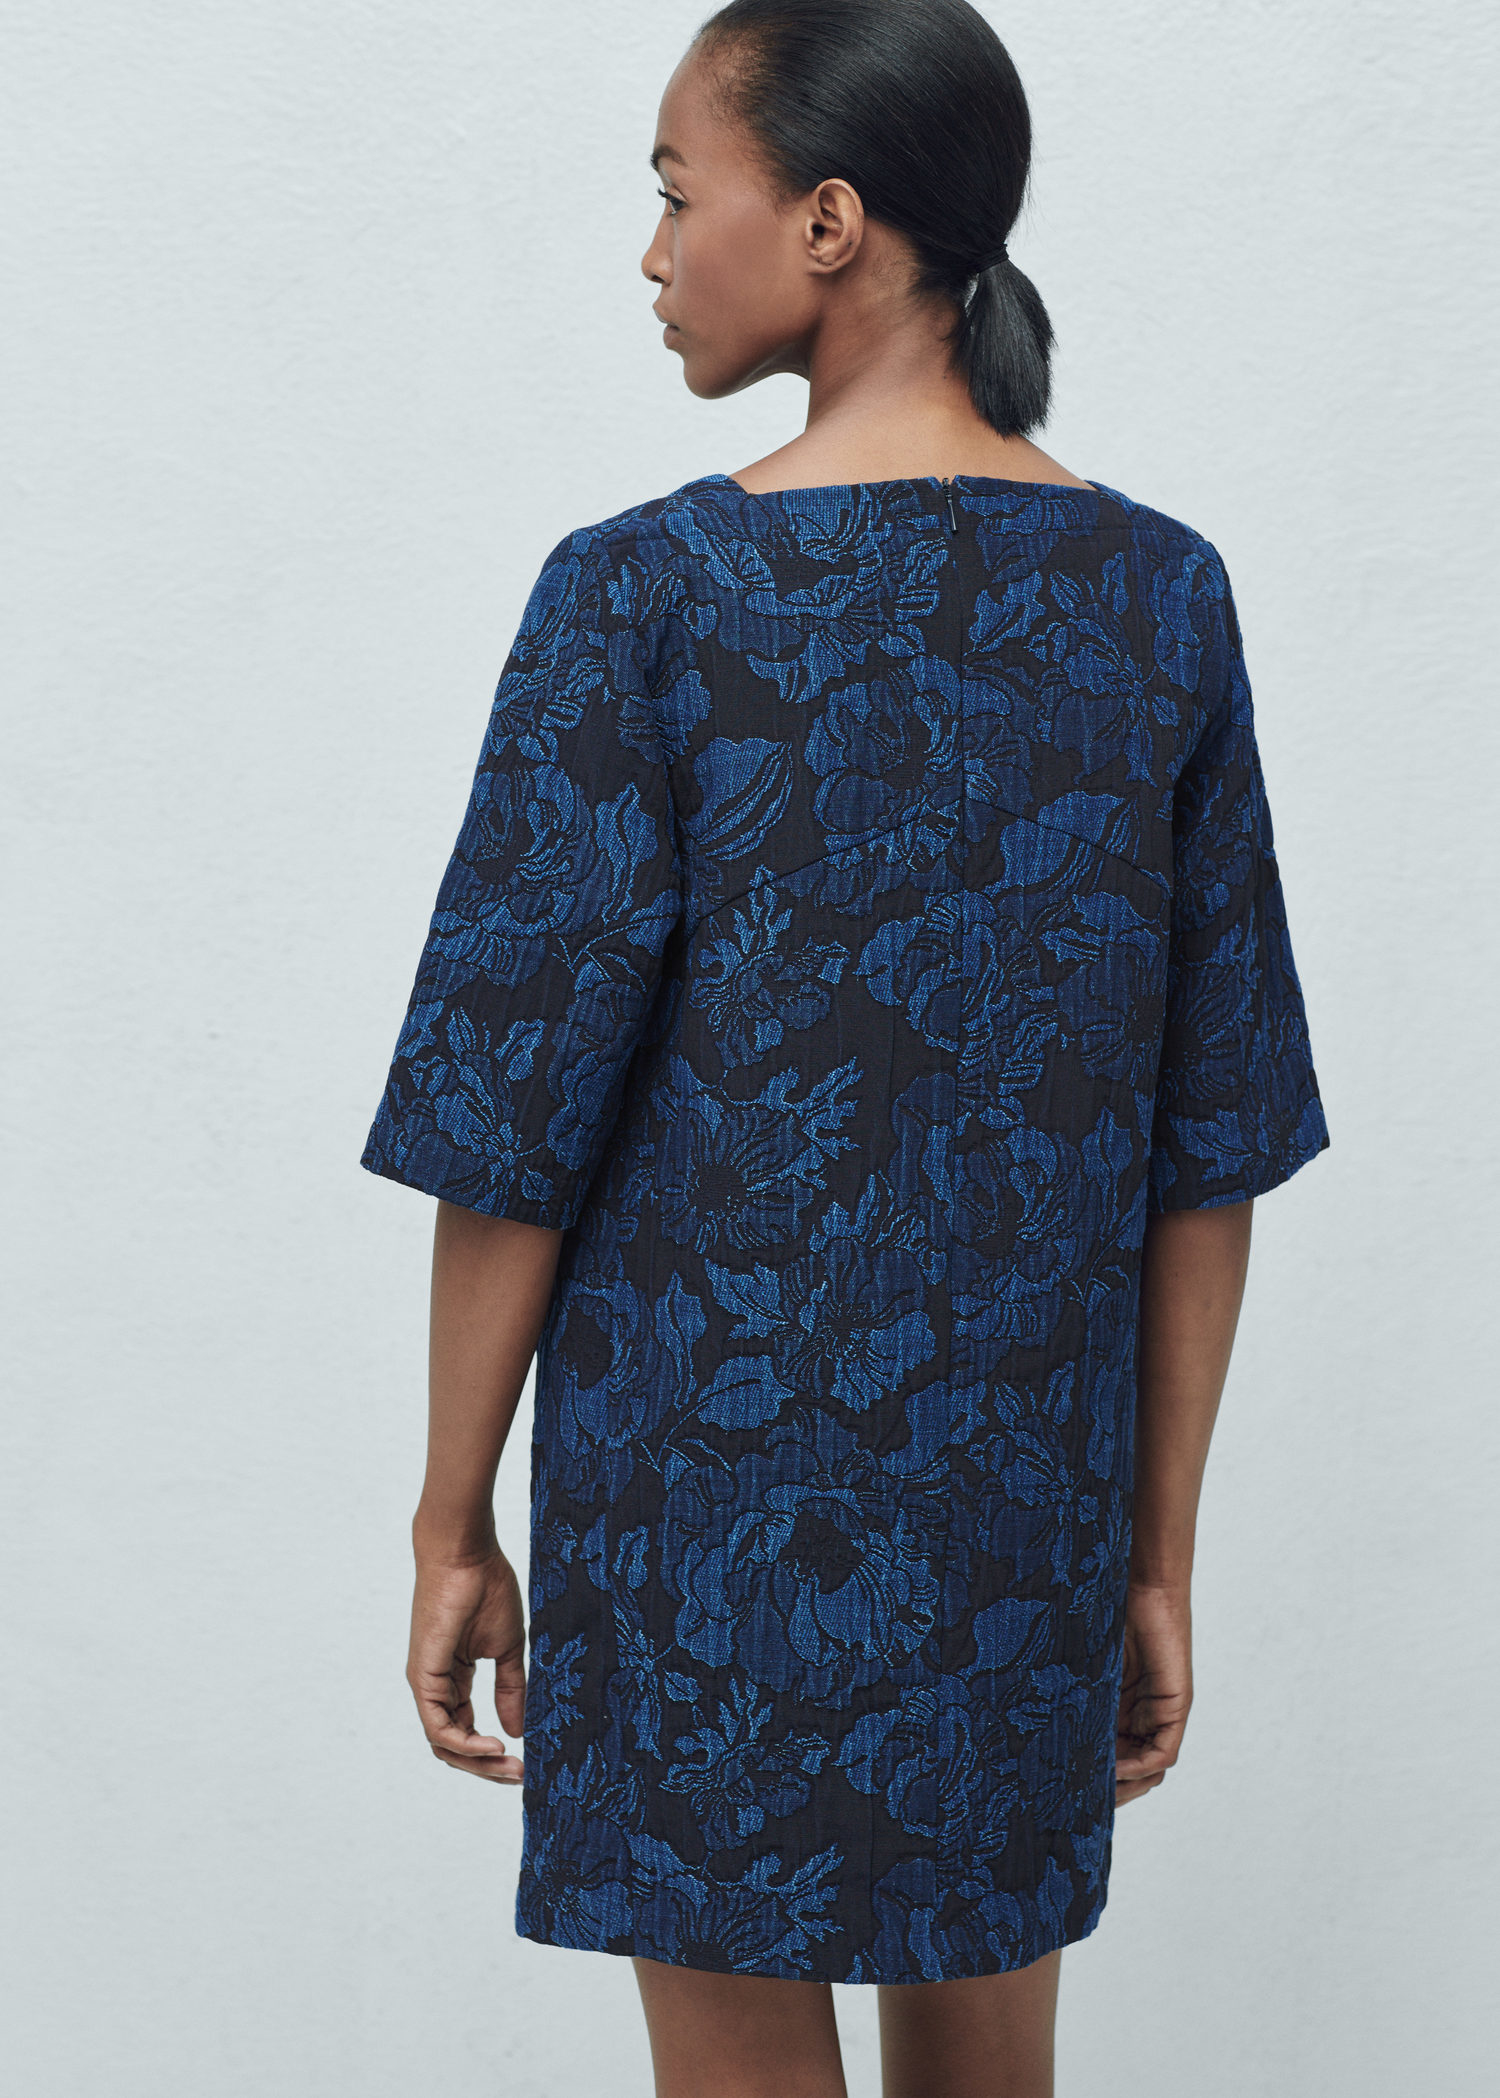 Lyst - Mango Textured Jacquard Dress in Blue 1223008e8